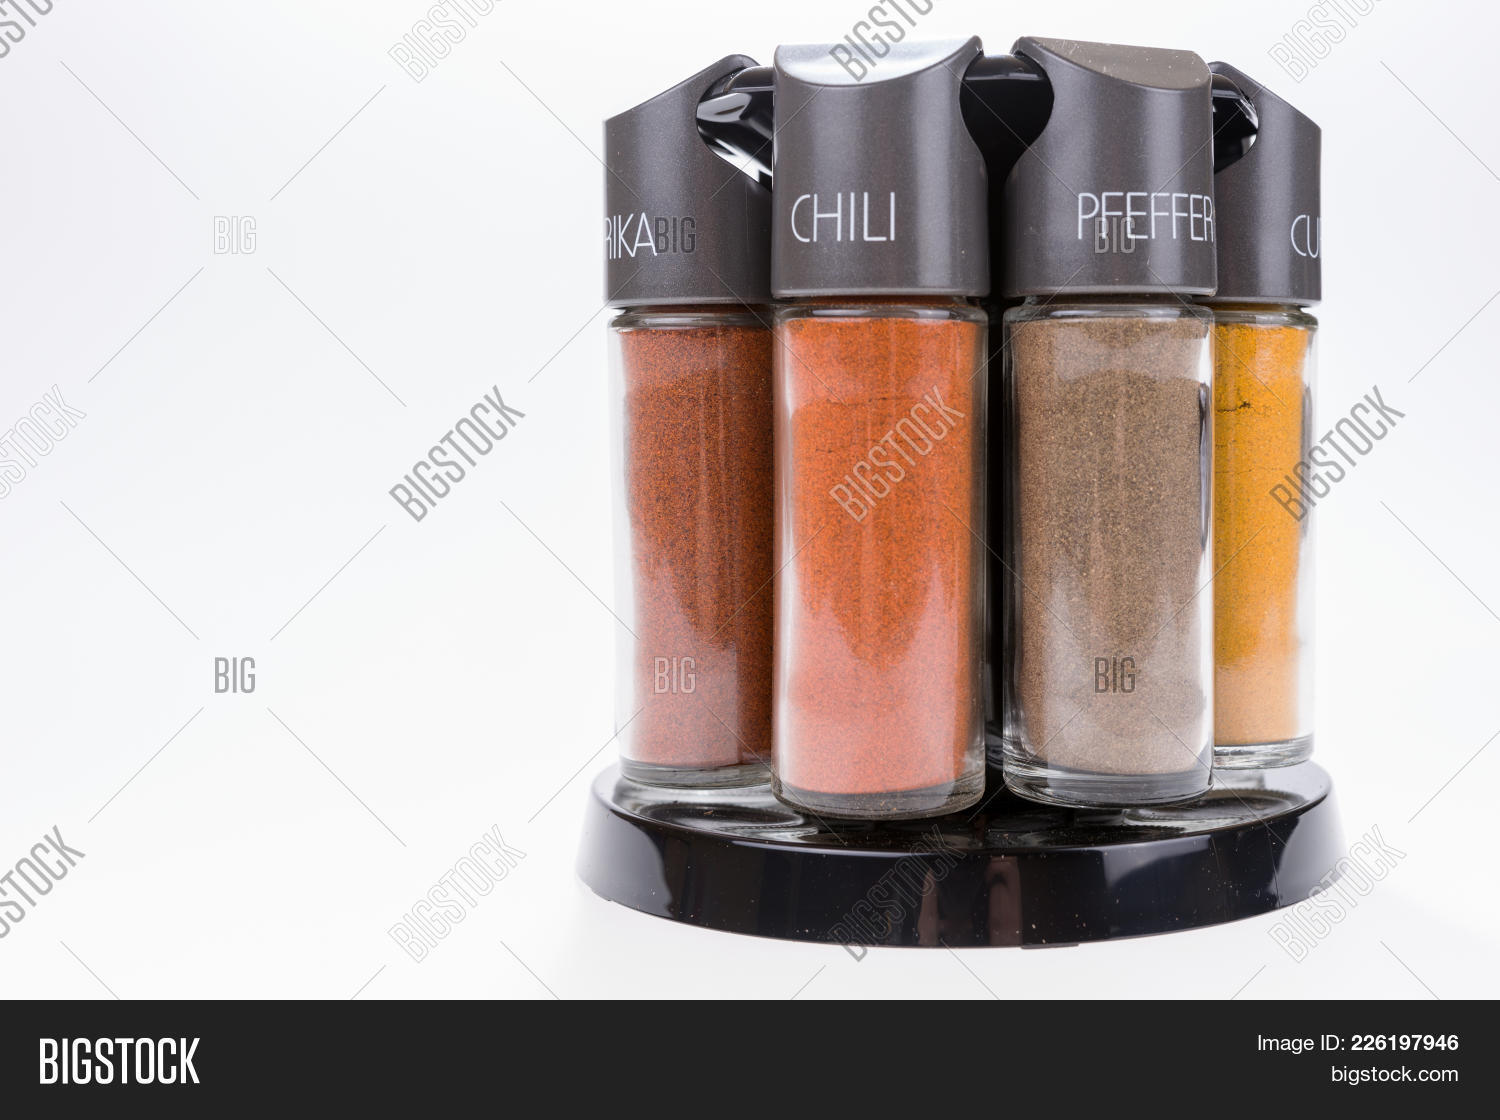 Spice Carousel Eight Image & Photo (Free Trial) | Bigstock